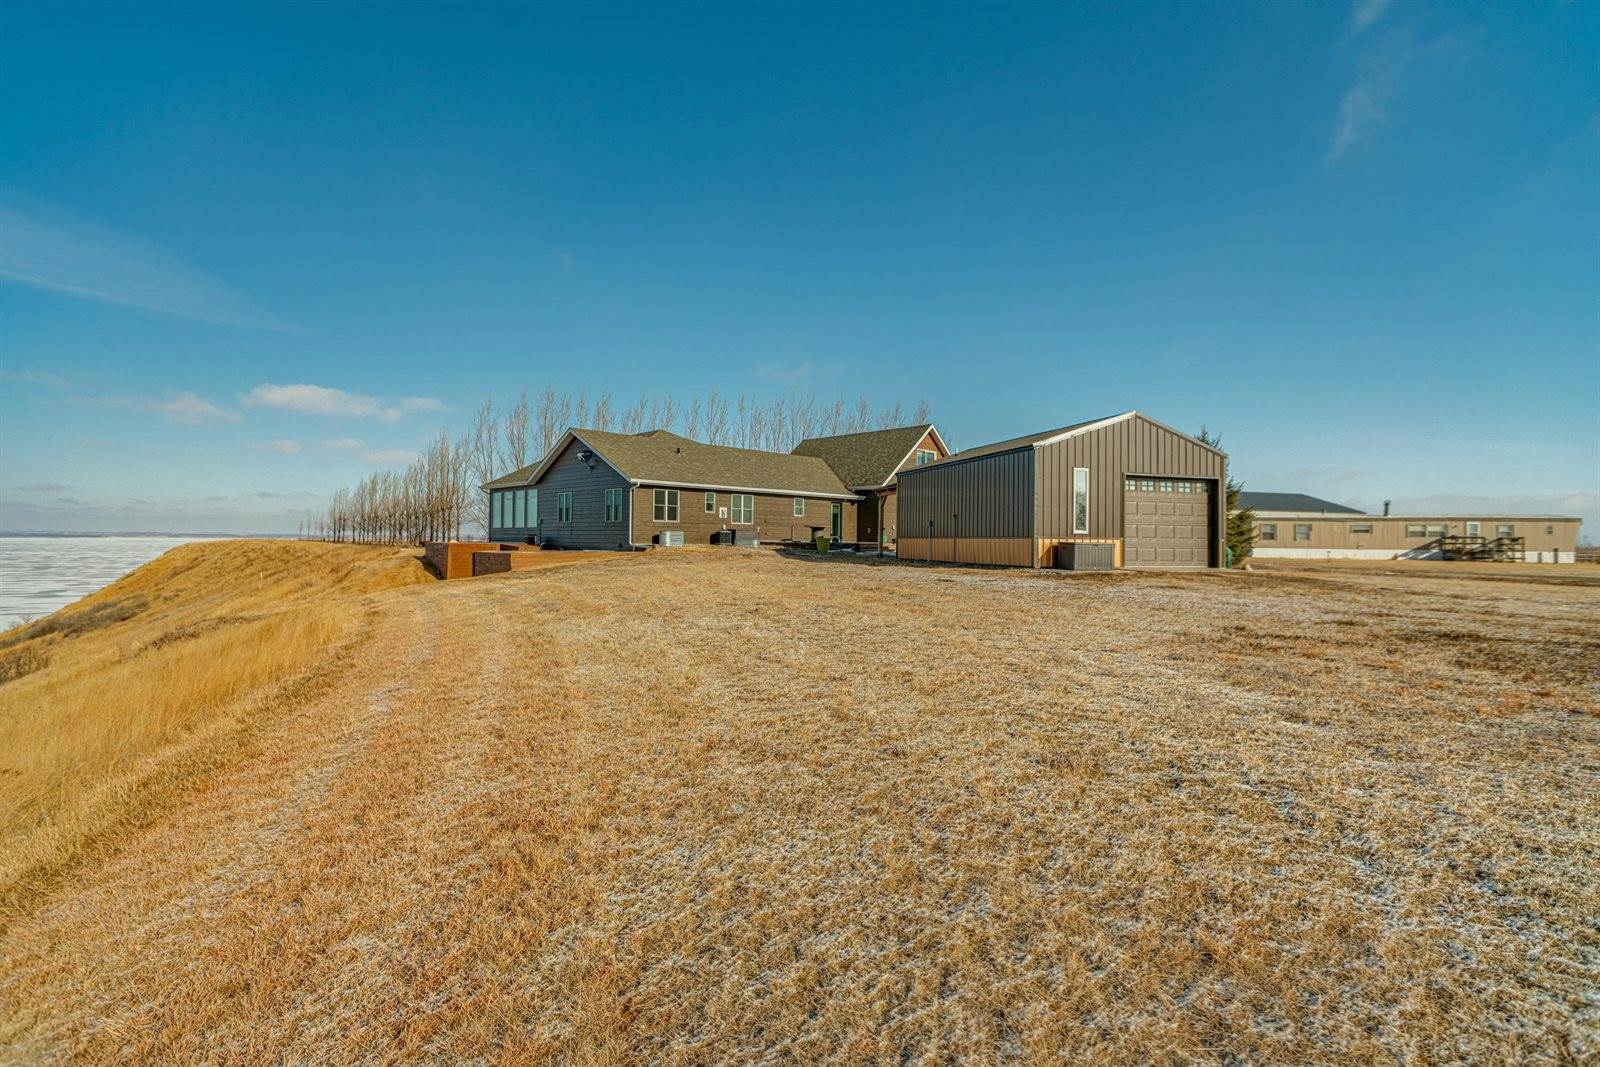 830 46th Avenue NW, #2, Hazen, ND 58545